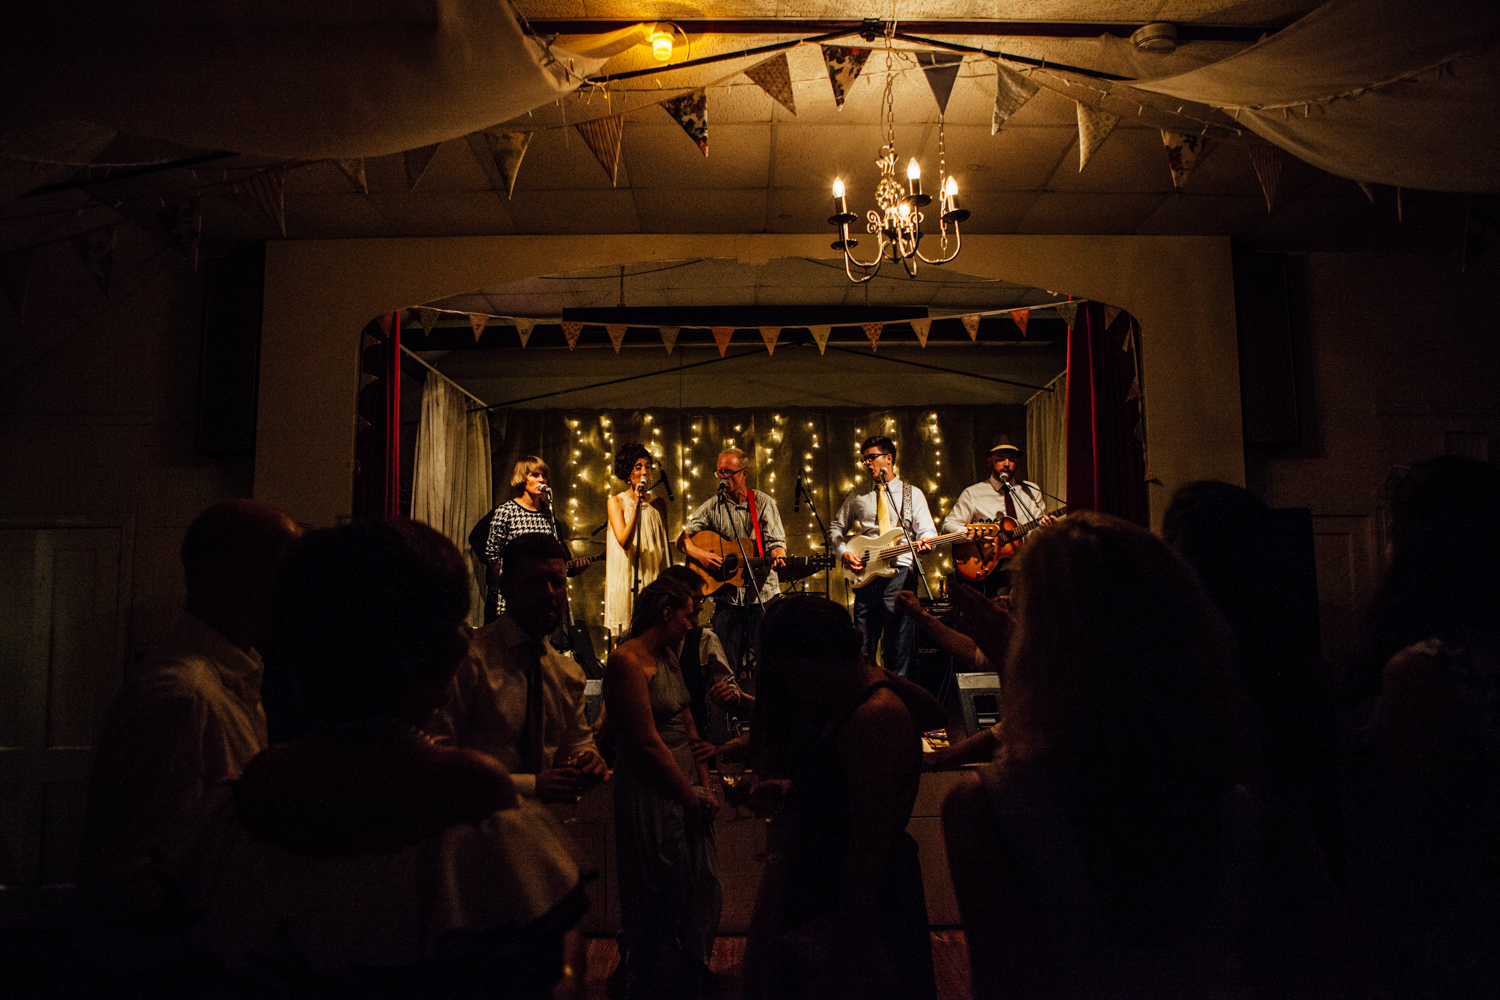 The Band Coco's Lovers play at a festival wedding in this guide on how to plan a festival wedding by Matilda Delves a Kent wedding photographer who specialises in natural wedding photography Kent